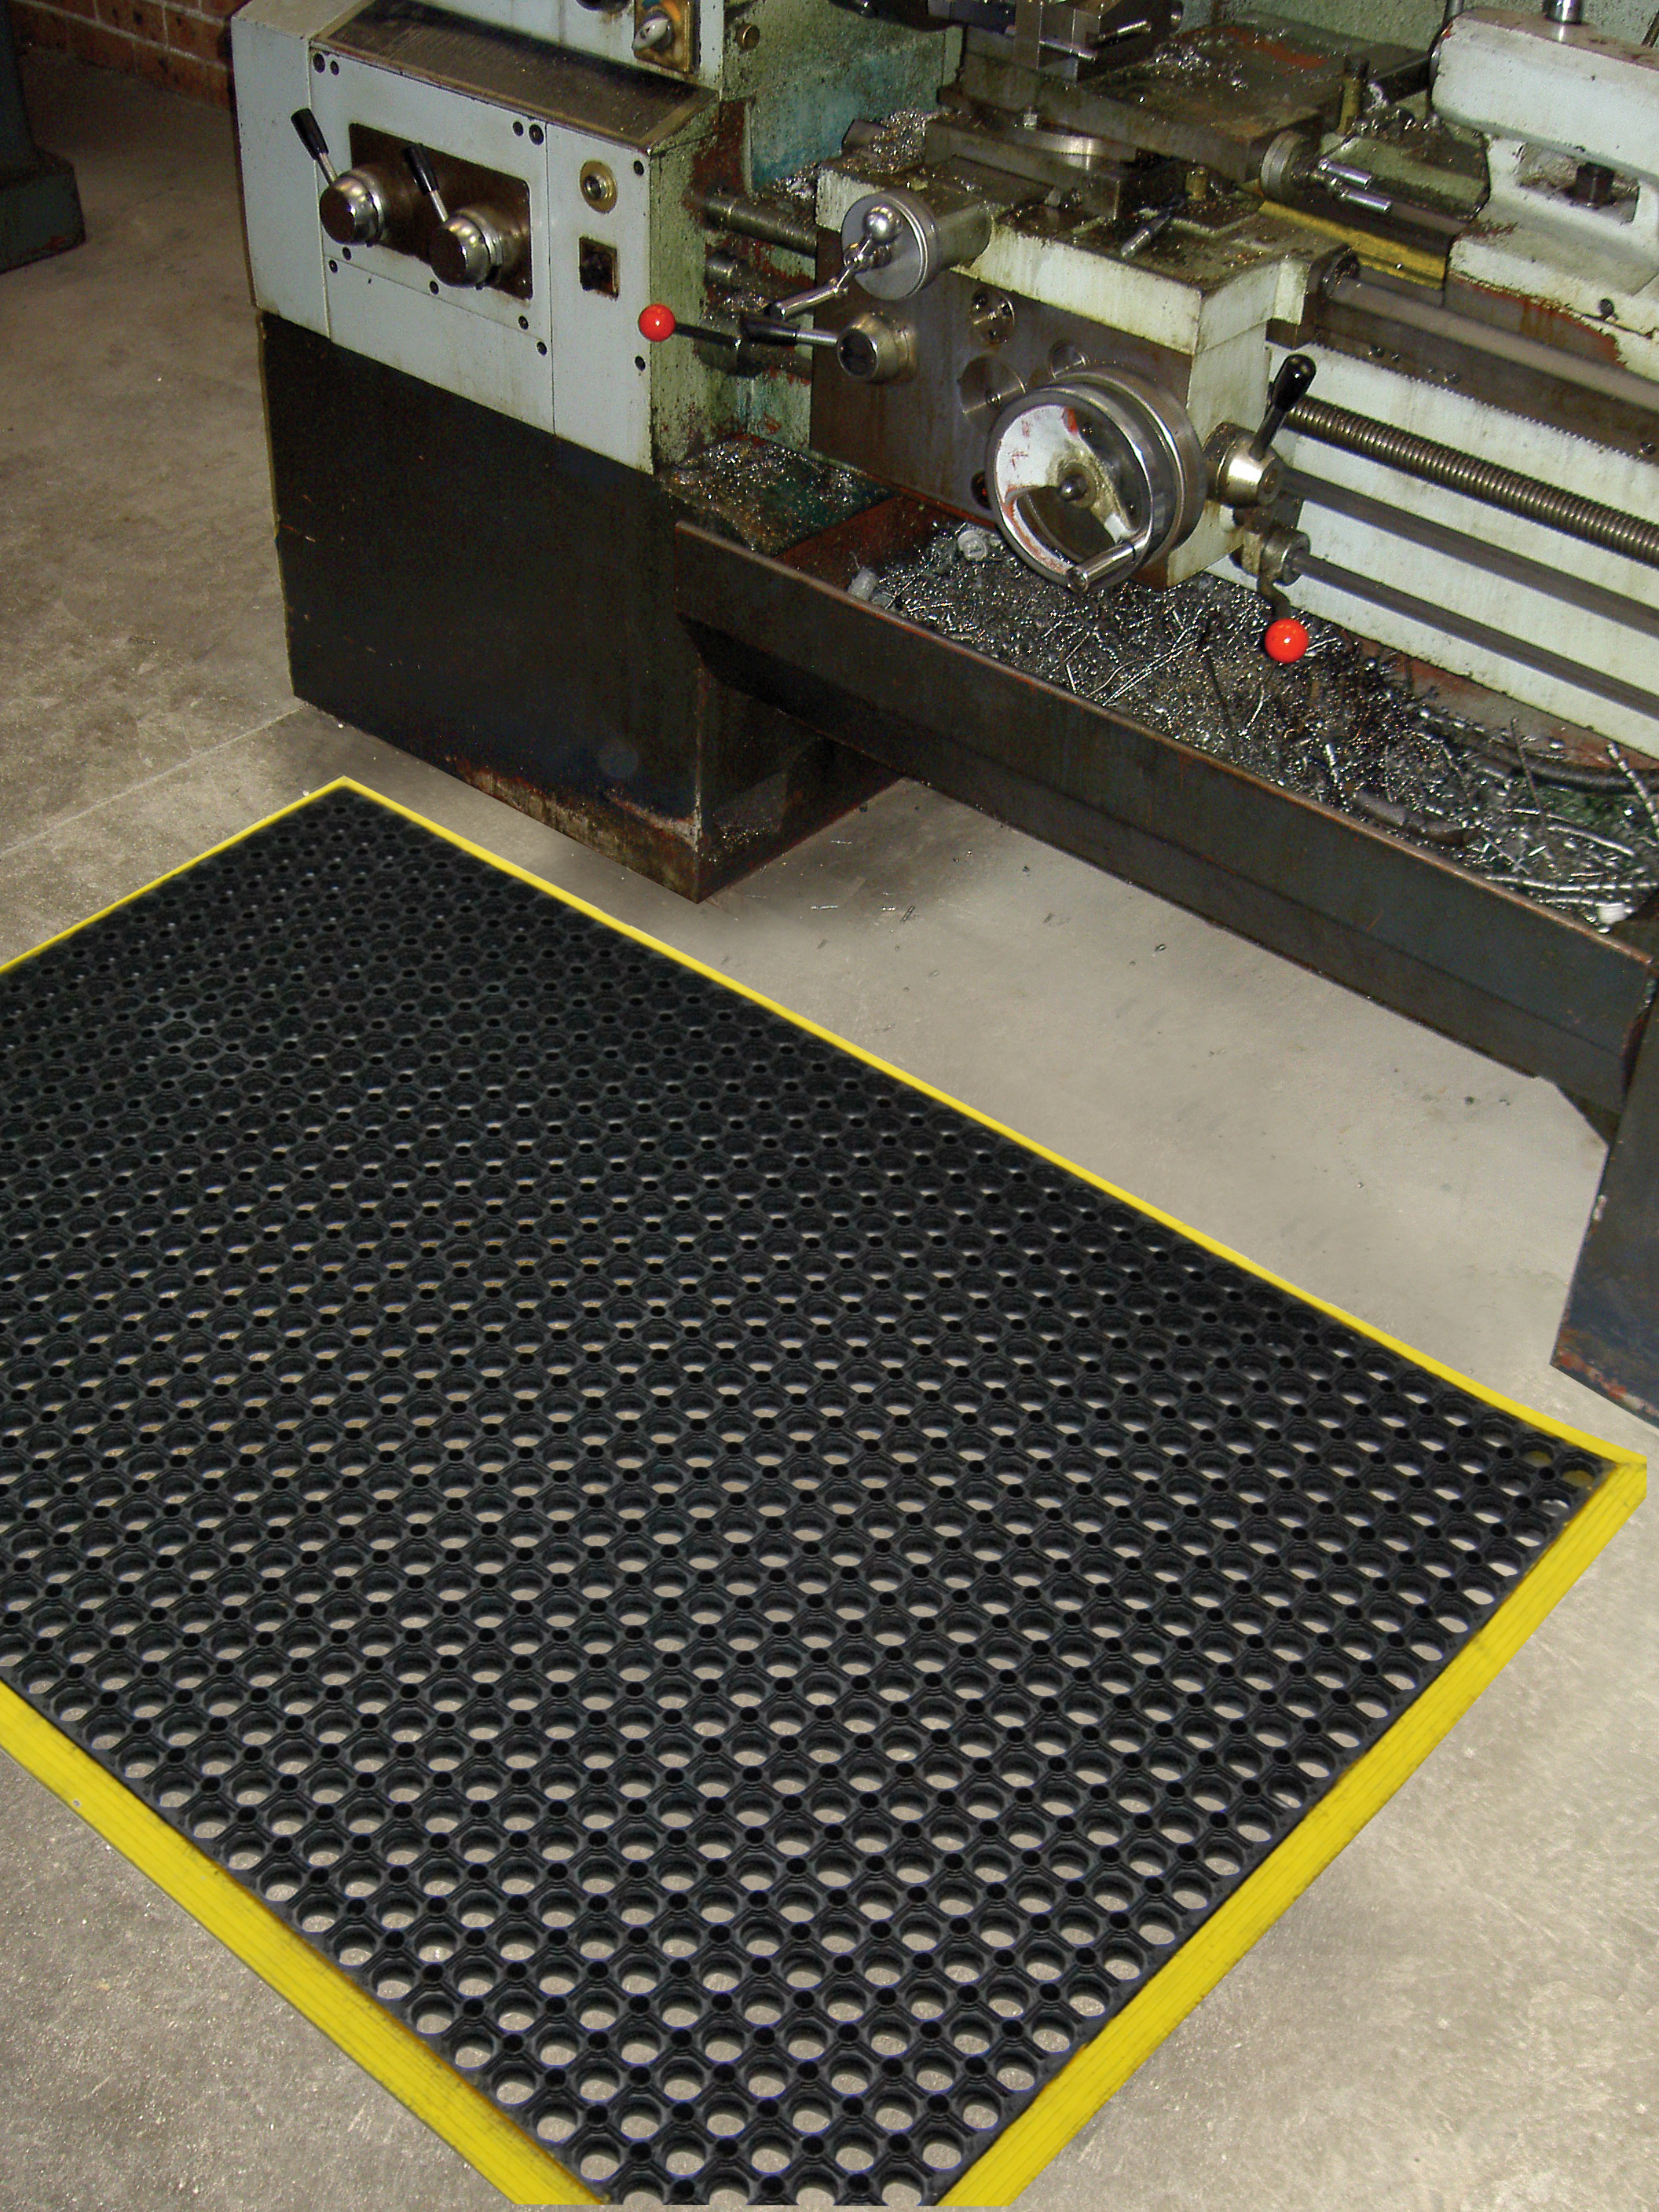 mat floor rugs kitchen backed runners dimensions washable rubber with target x mats decorative runner